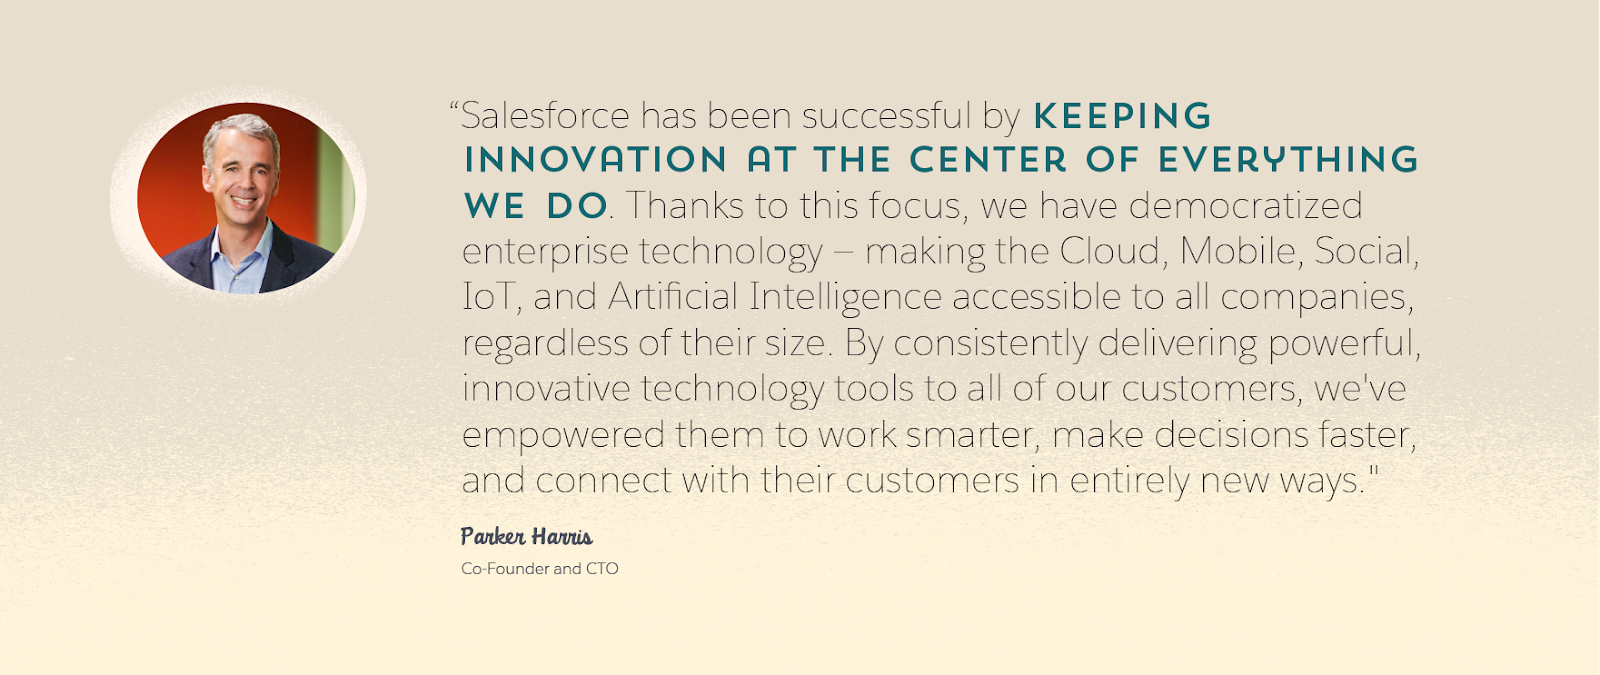 "Graphic of Parker Harris, Salesforce co-founder and CTO, and a quote from him: ""Salesforce has been successful by keeping innovation at the center of everything we do. Thanks to this focus, we have democratized enterprise technology—making the Cloud, Mobile, Social, IoT, and Artificial Intelligence accessible to all companies, regardless of their size. By consistently delivering powerful, innovative technology tools to all of our customers, we've empowered them to work smarter, make decisions faster, and connect with their customers in entirely new ways."""